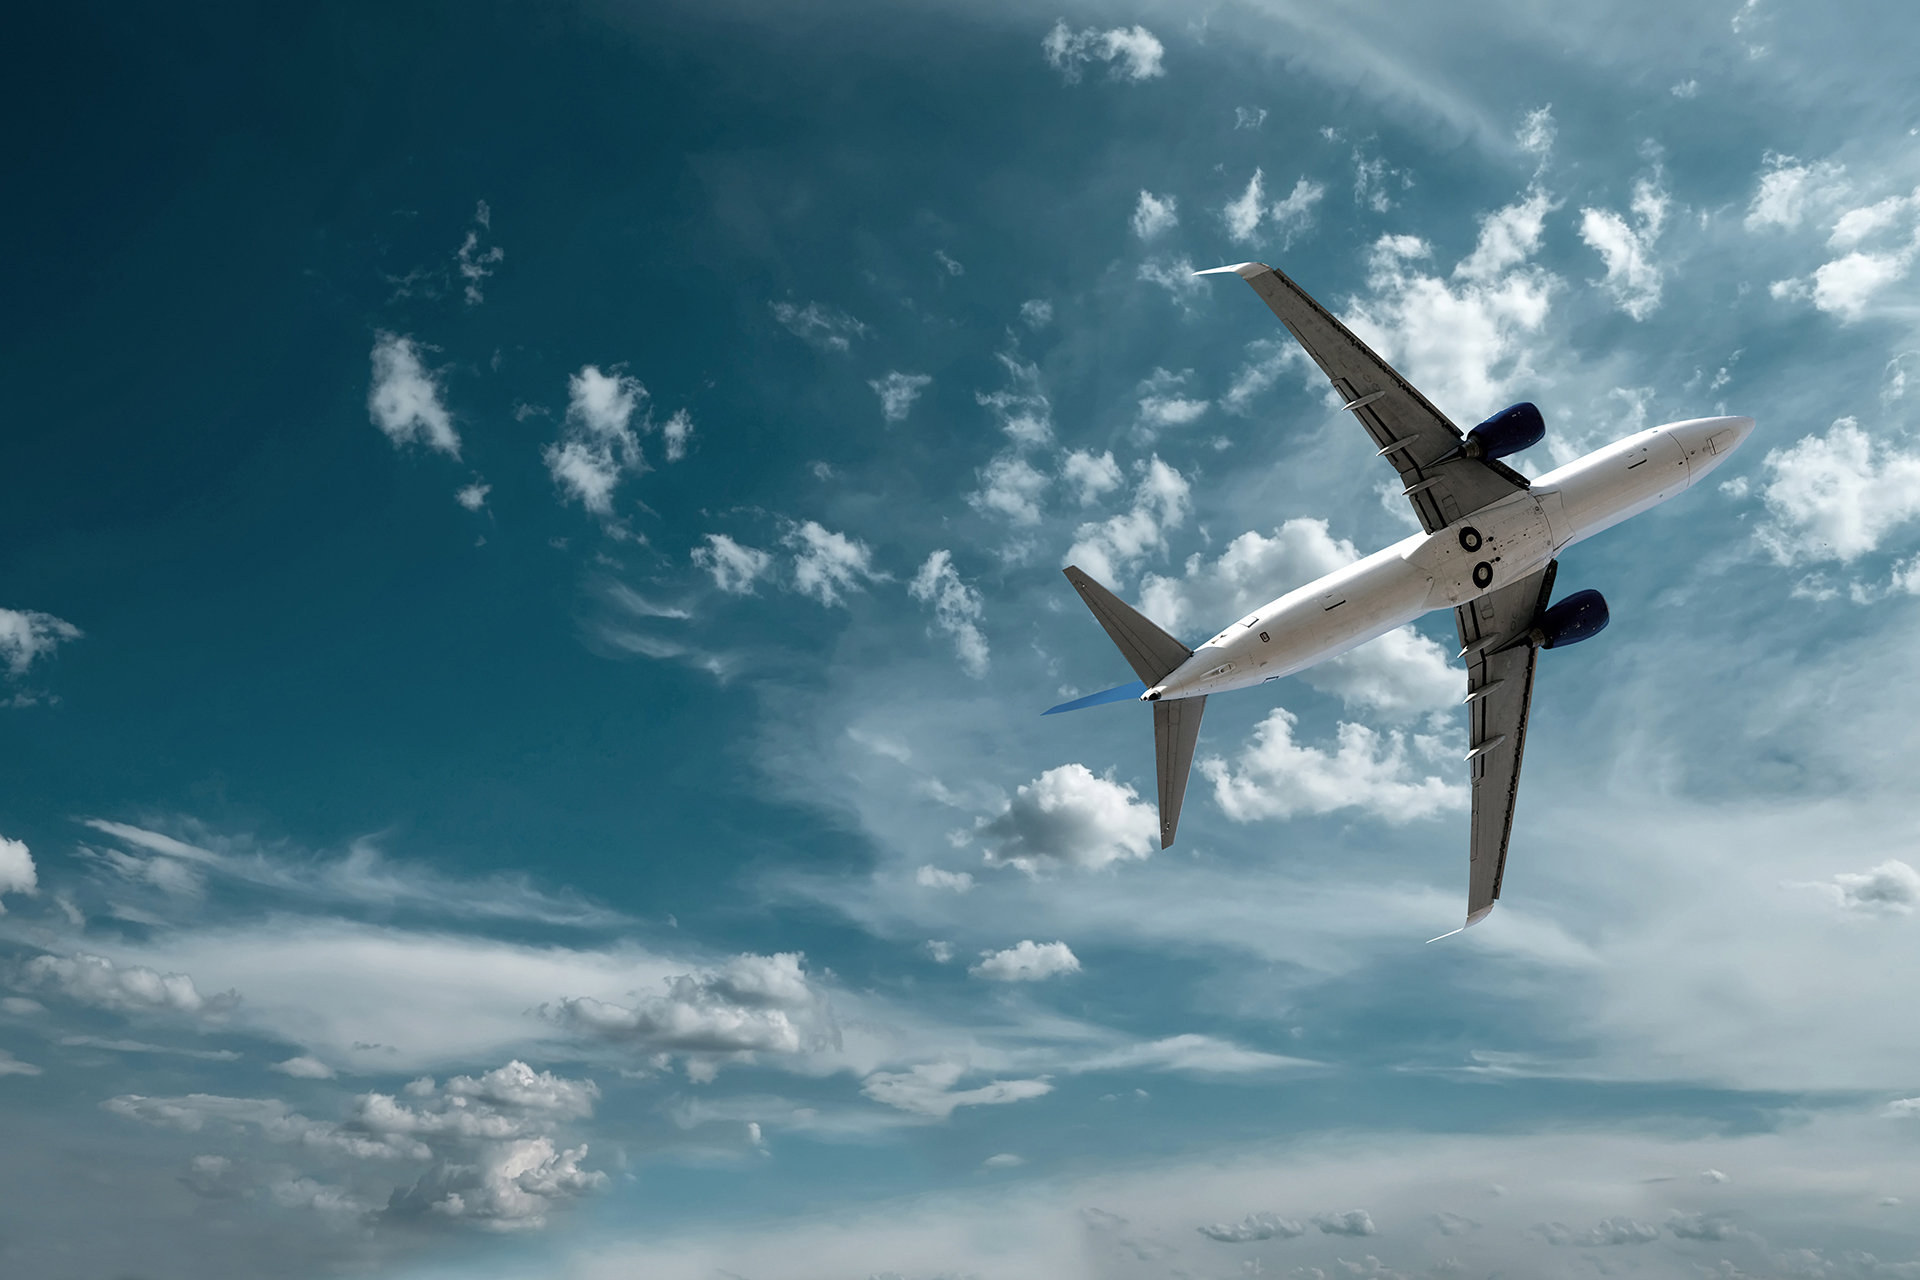 Air Passengers Want Governments to Focus on Sustainable Fuels to Cut Aviation Carbon Emissions